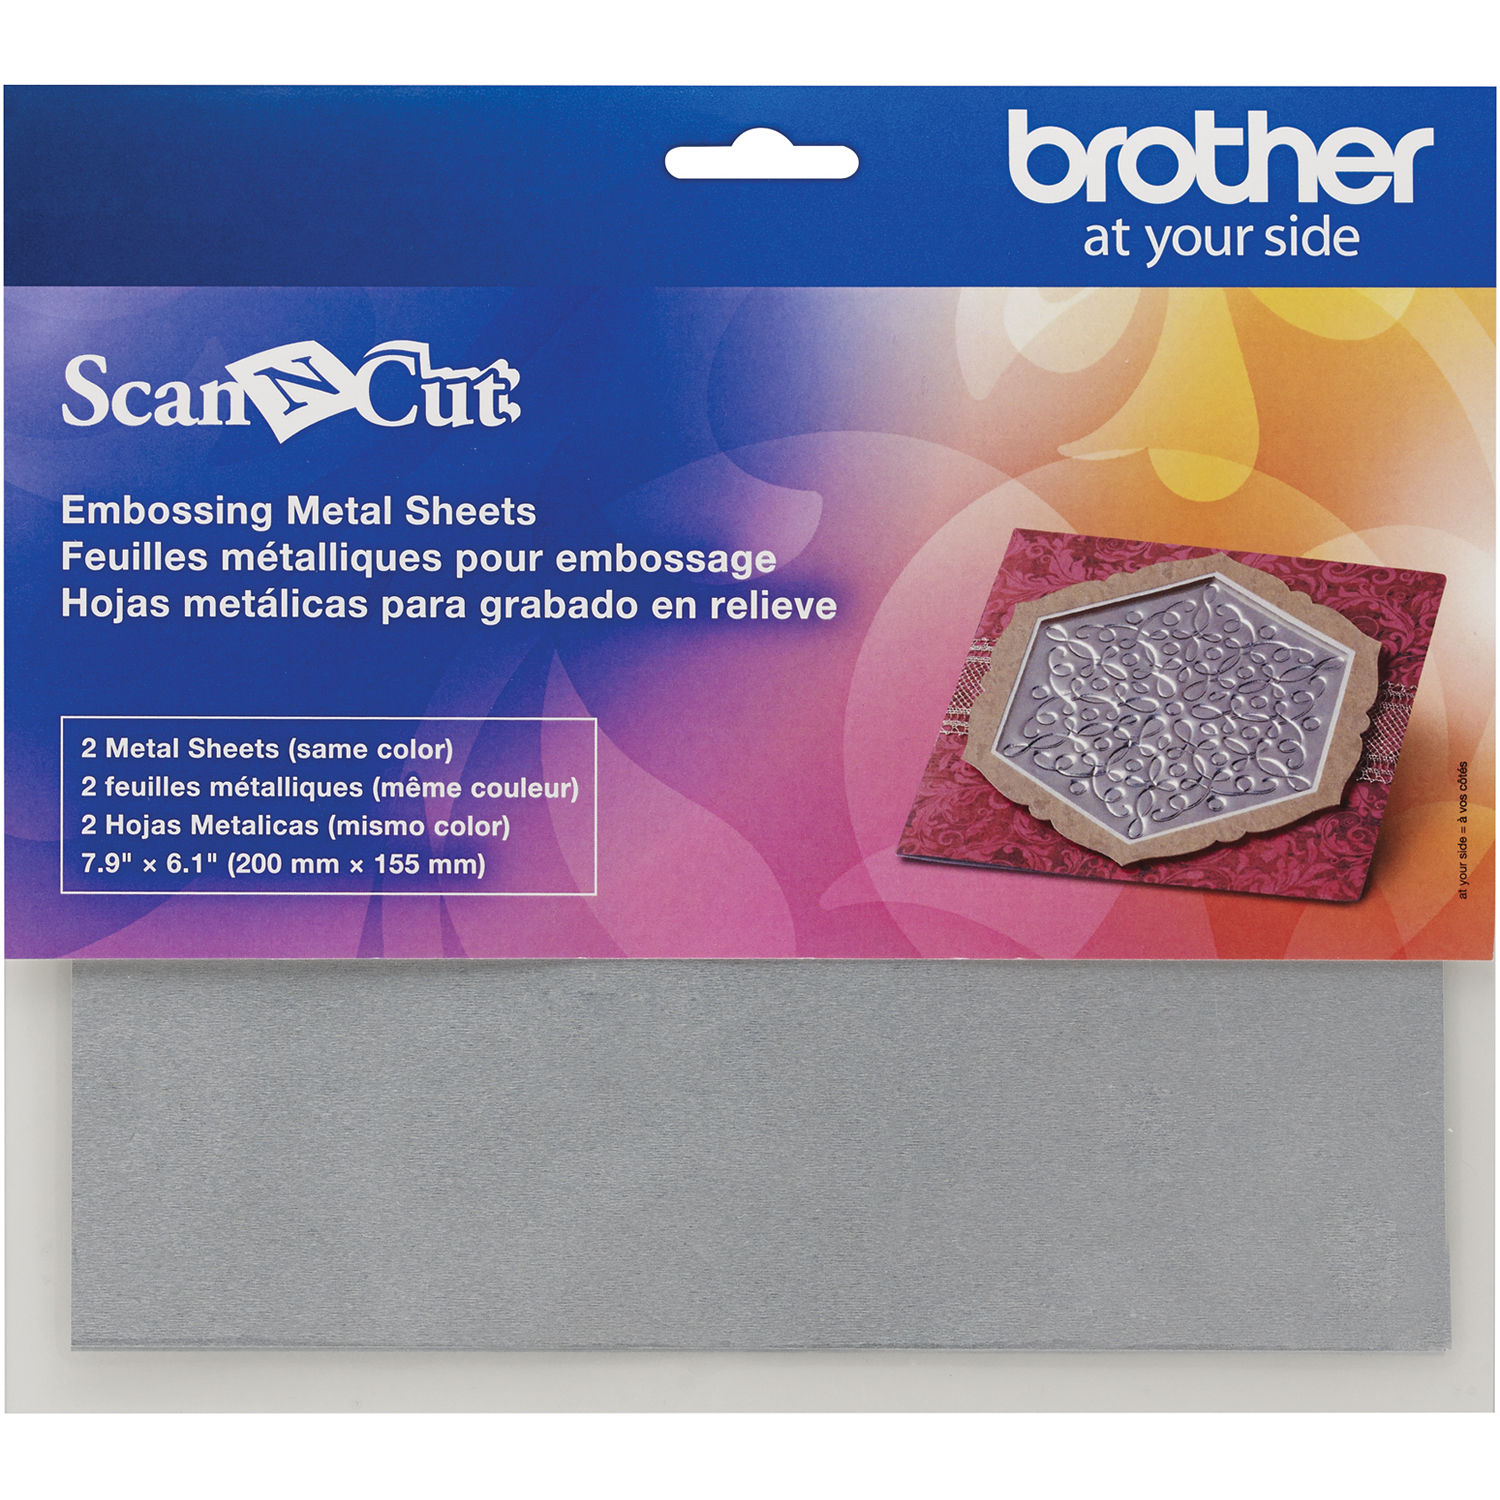 Brother ScanNCut Embossing Silver Sheets